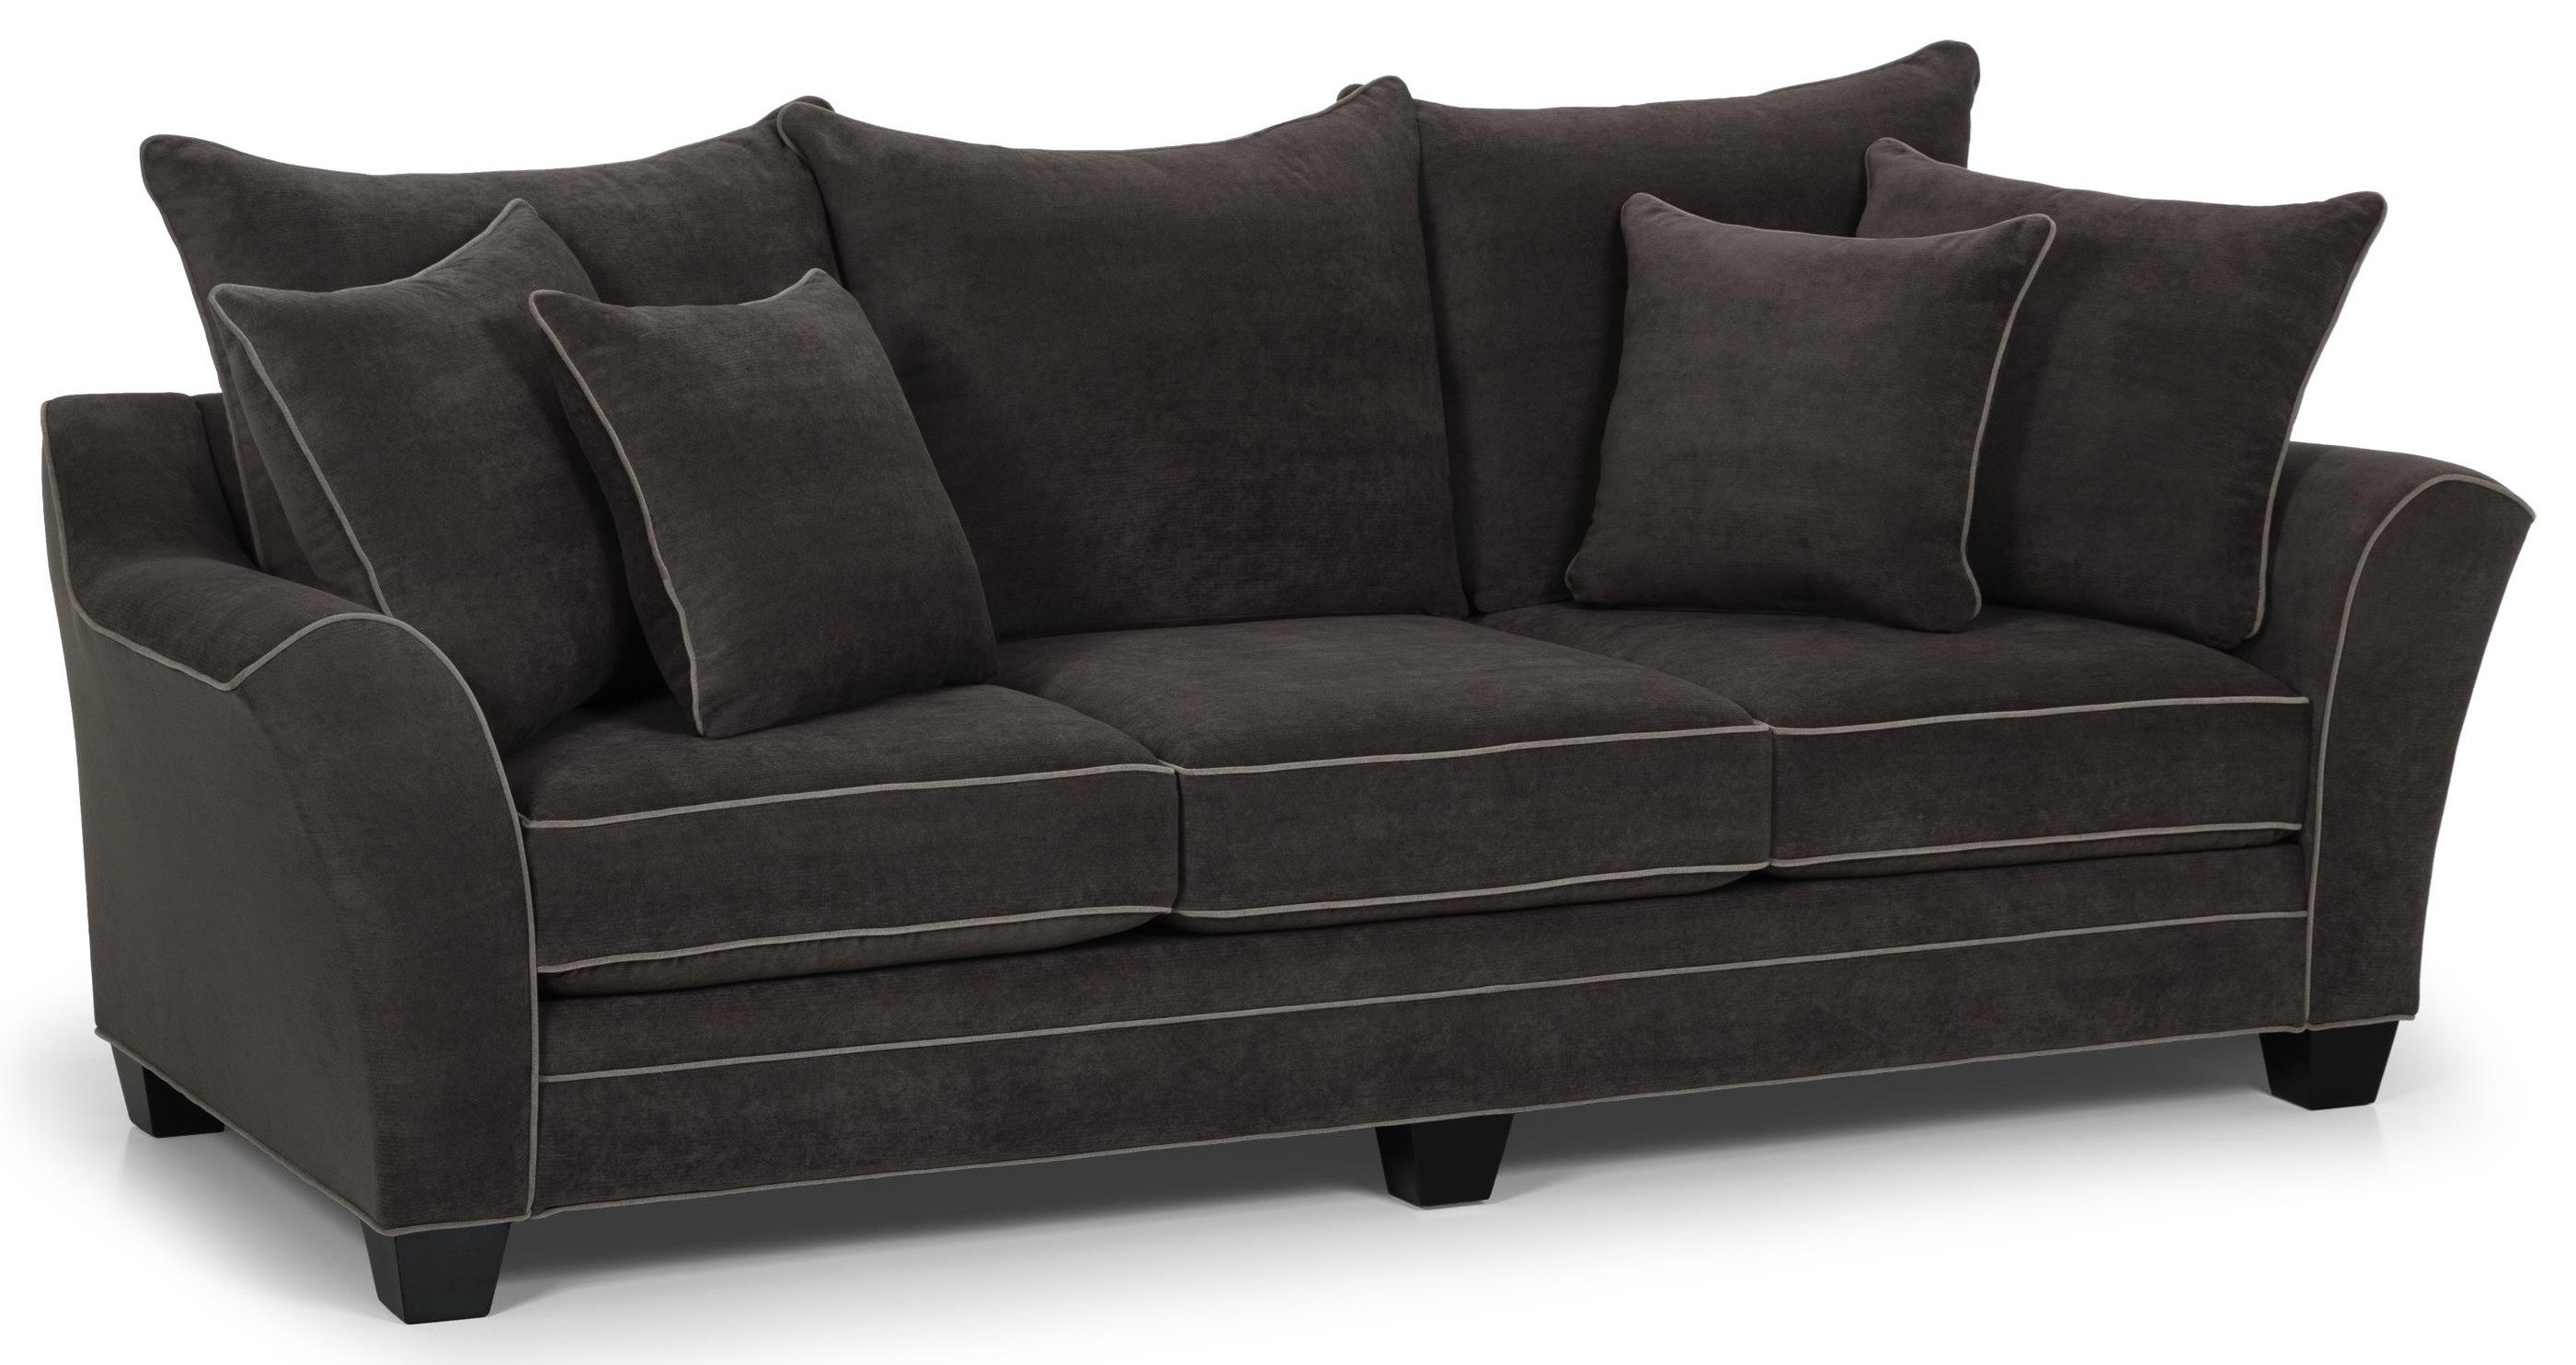 3-Seater Stationary Sofa